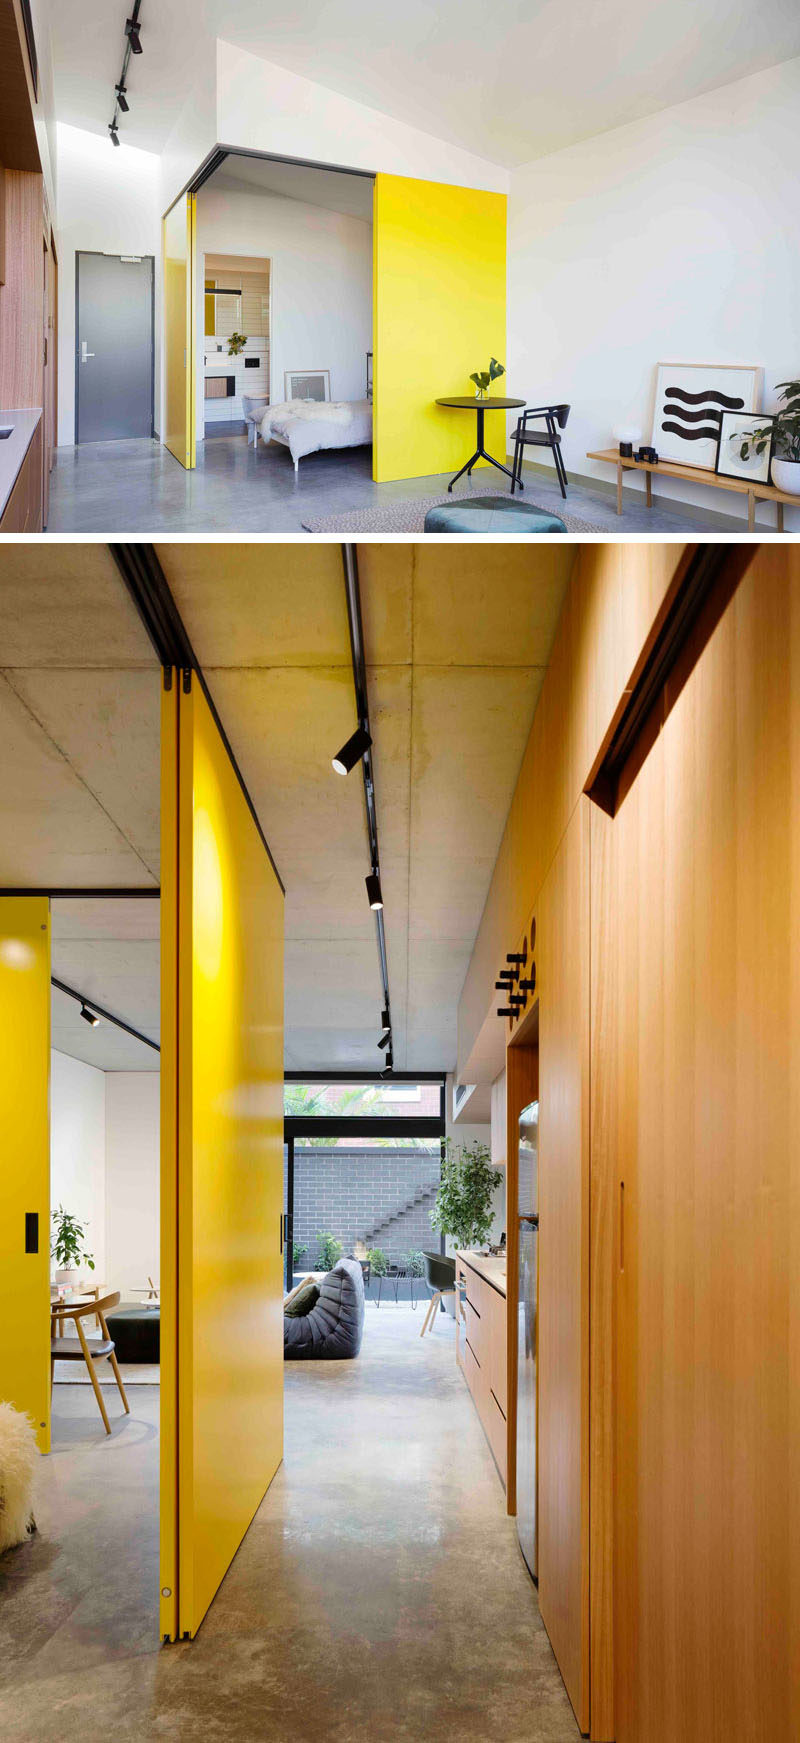 This modern apartment has bright yellow doors that slide open to reveal the bedroom, and the living room opens up to a private courtyard.